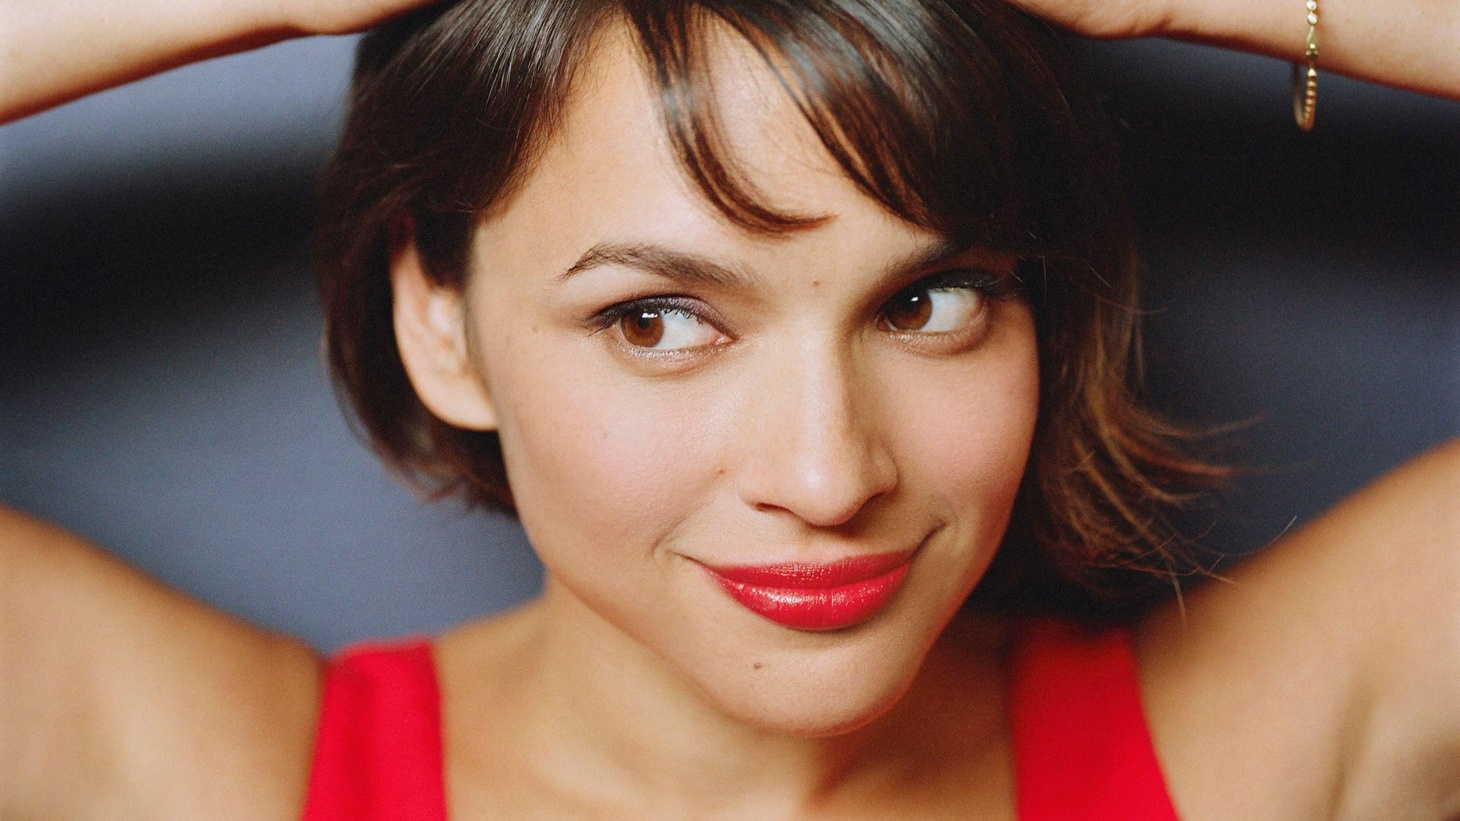 Grammy-award winning artist Norah Jones keeps evolving with every record. On her fourth album, The Fall, Norah moves in another new direction, experimenting with different sounds and a new set of collaborators...